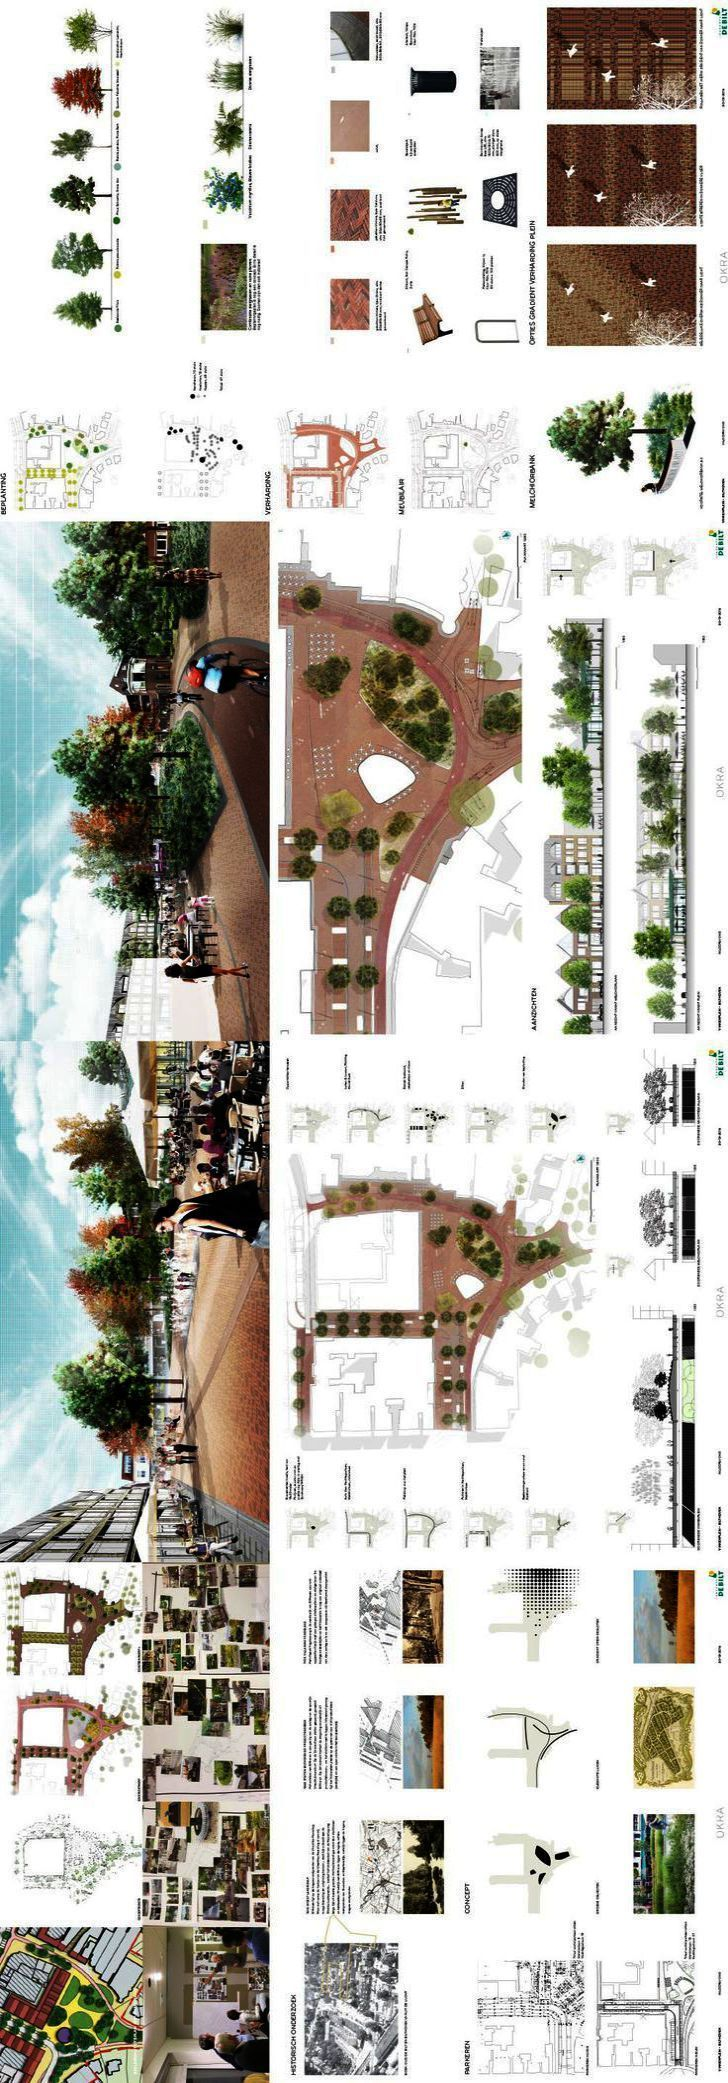 Landscape Gardening Jobs London between Landscape Architecture Foundation #archi...